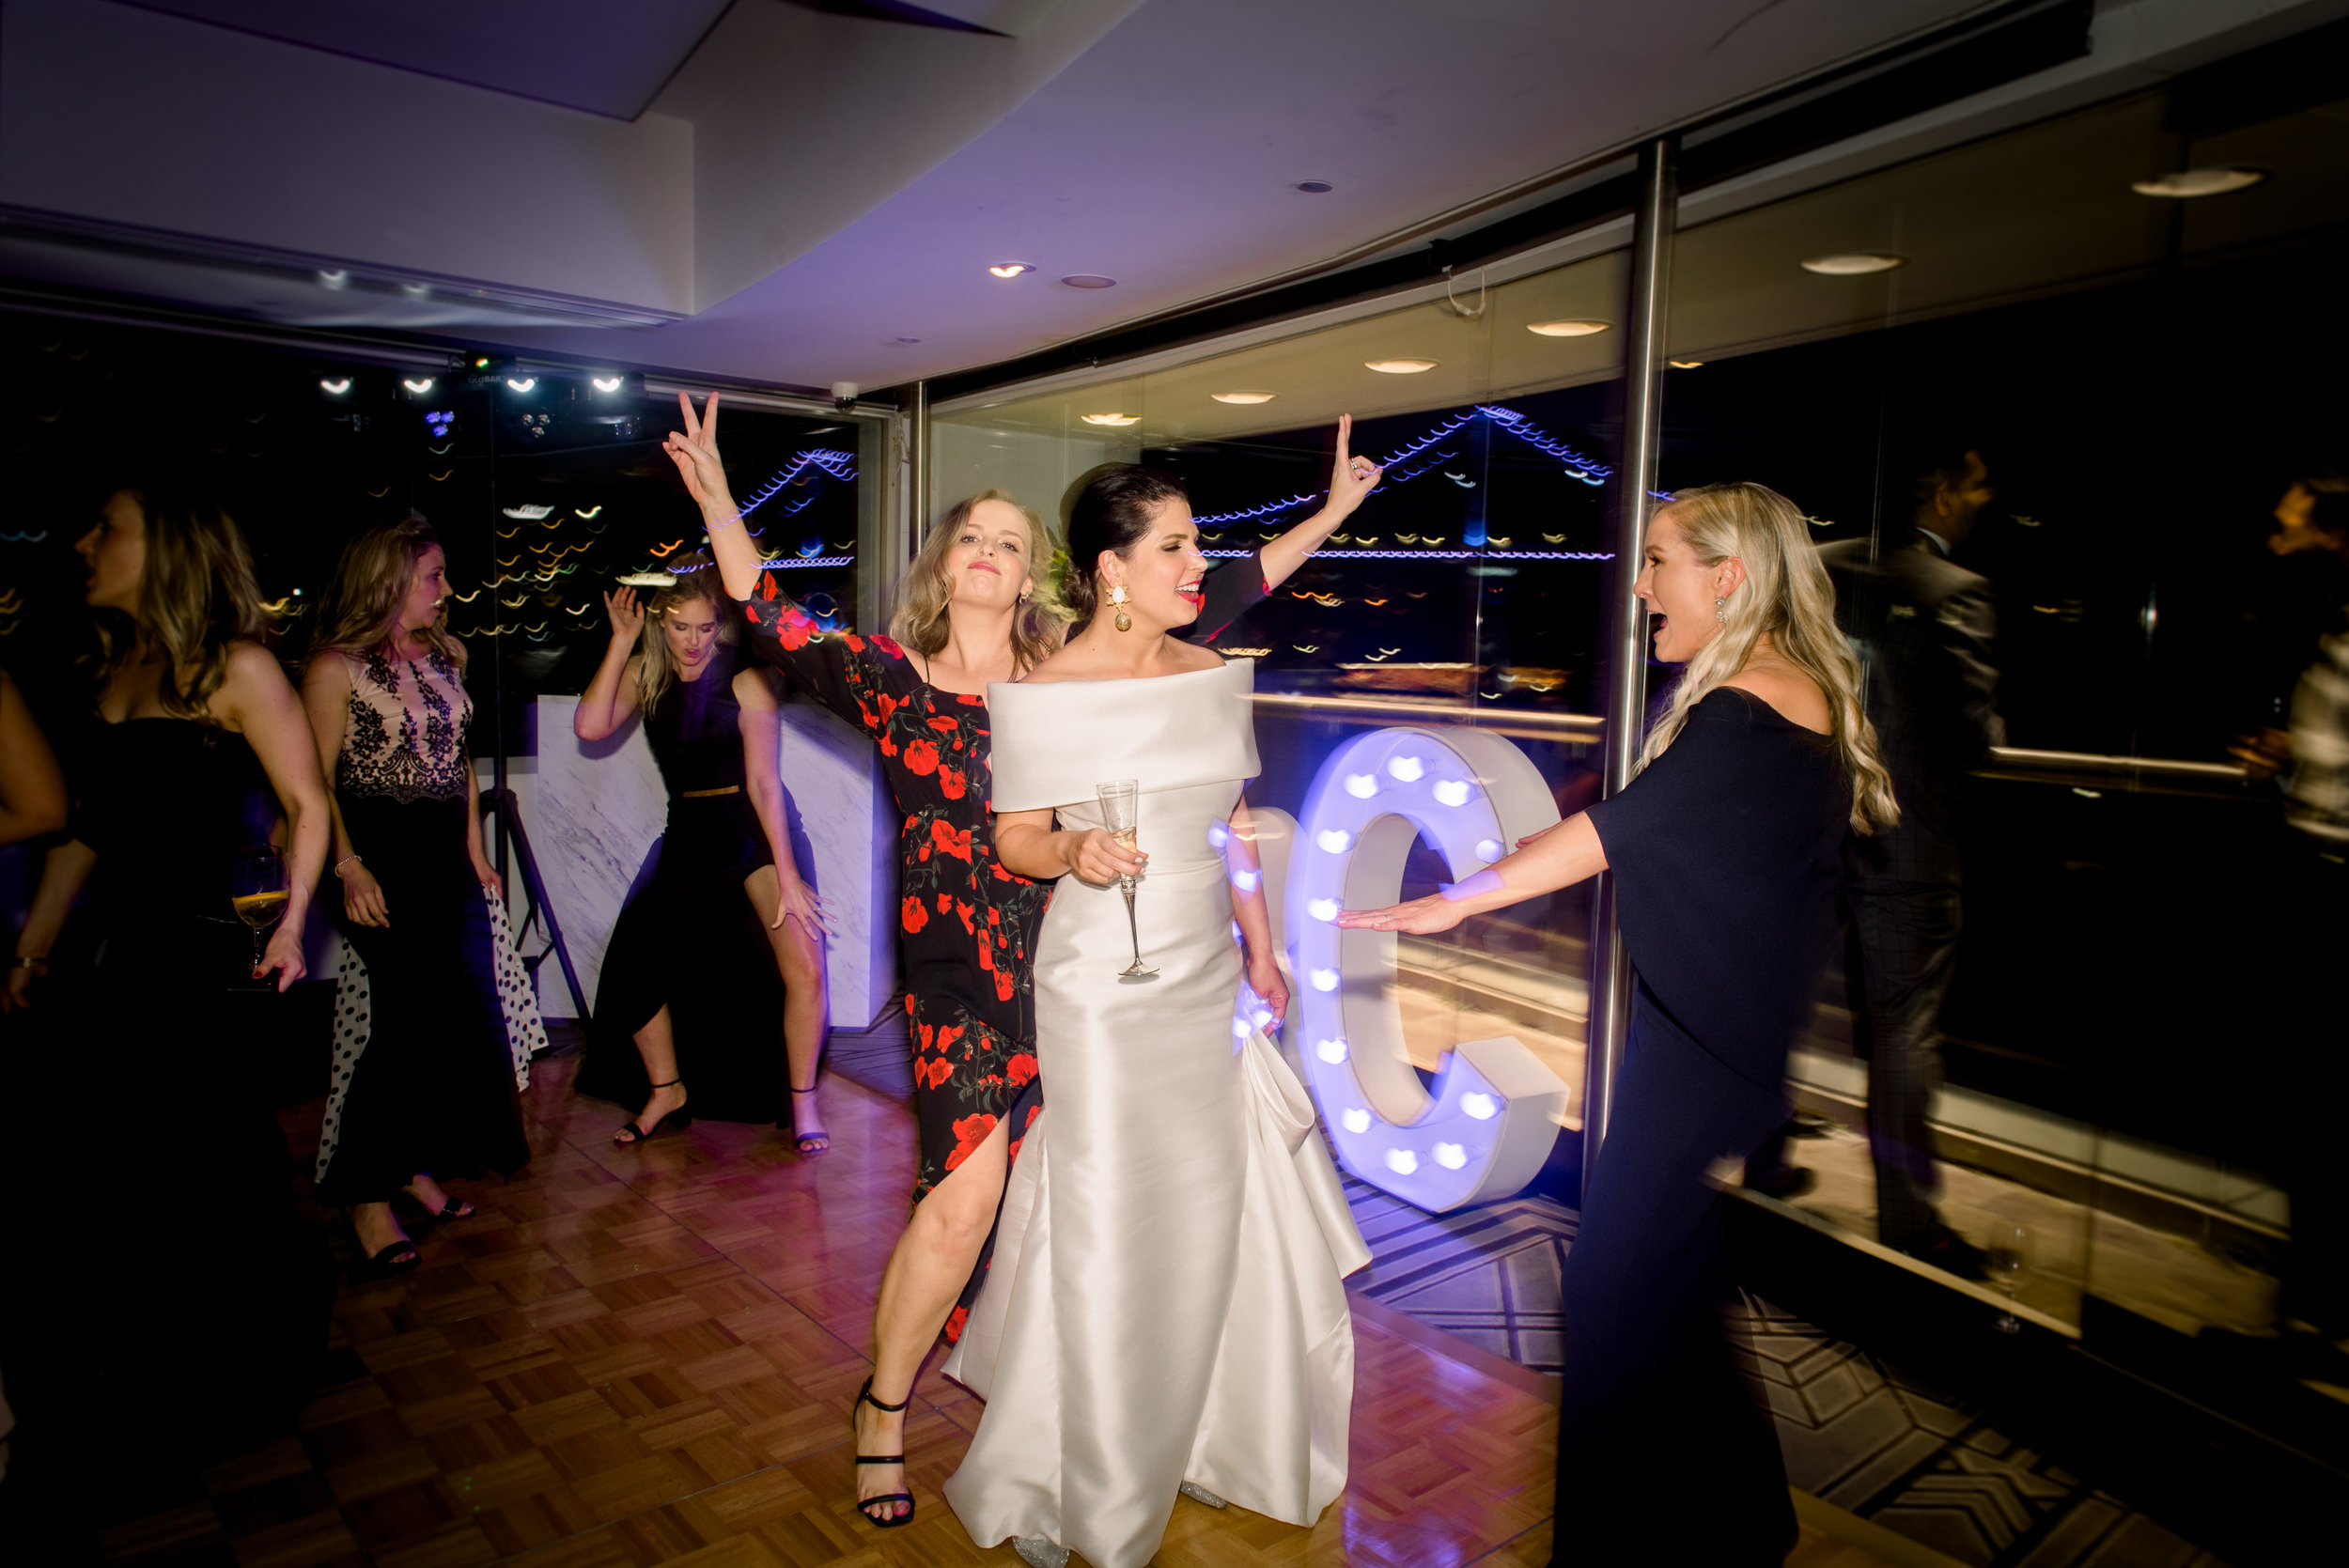 black-bird-brisbane-wedding-photography-film-photography-beautiful-reception-dance-candid-tweed-coast-wedding-193.jpg